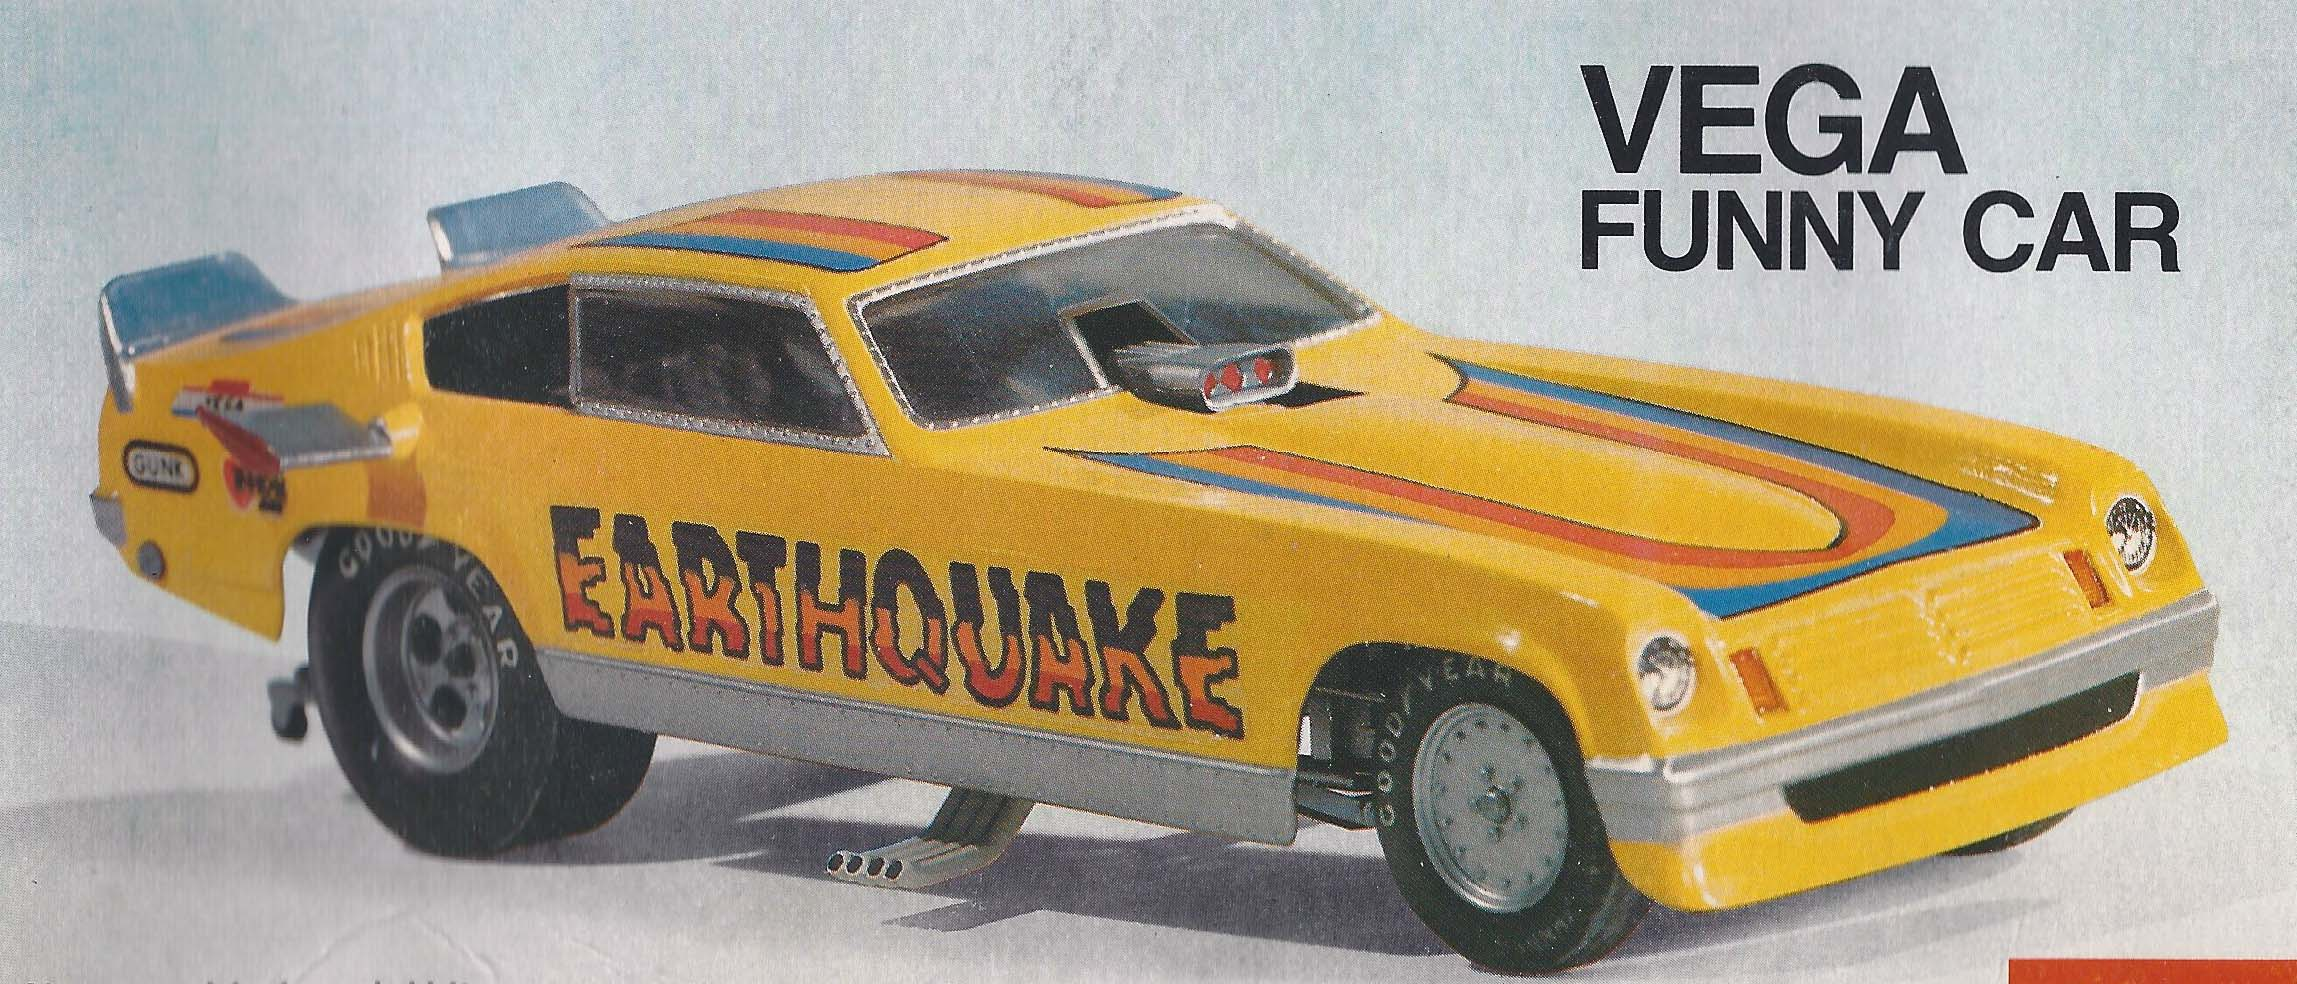 Atlantis 1/32 Snap Tom Daniel Earthquake Vega Funny Car